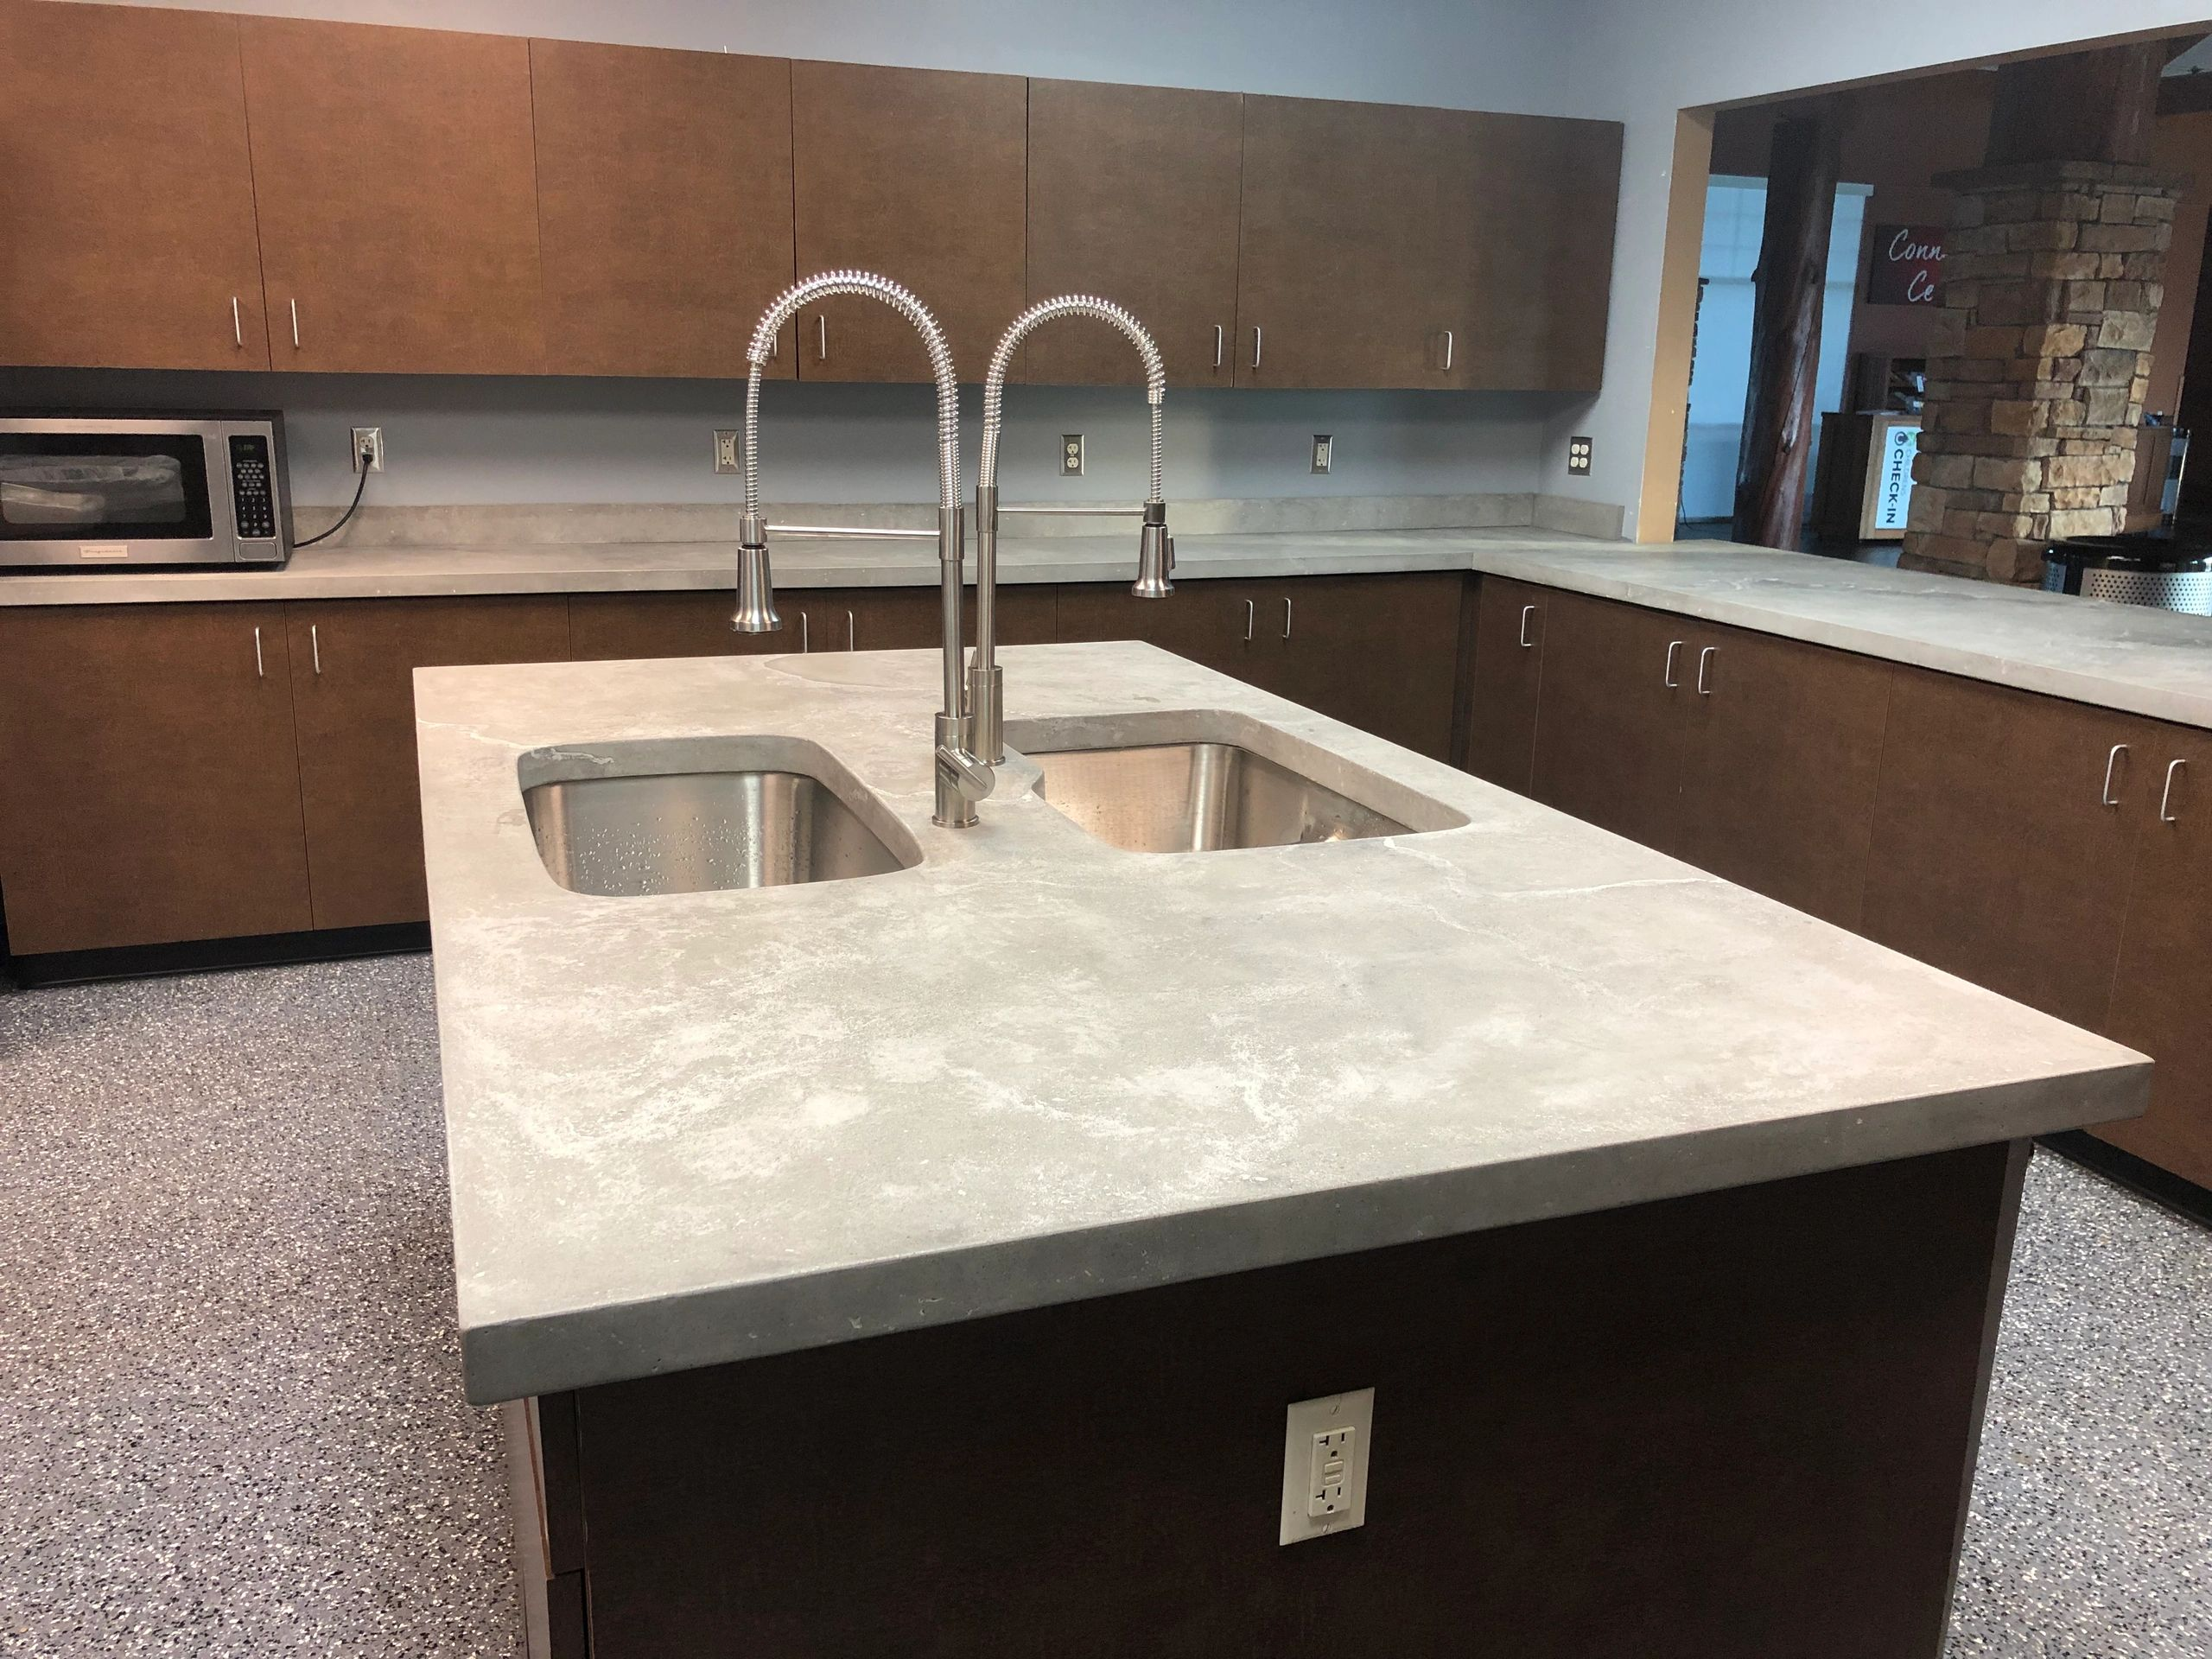 Concrete countertops in natural gray with black and white veining.